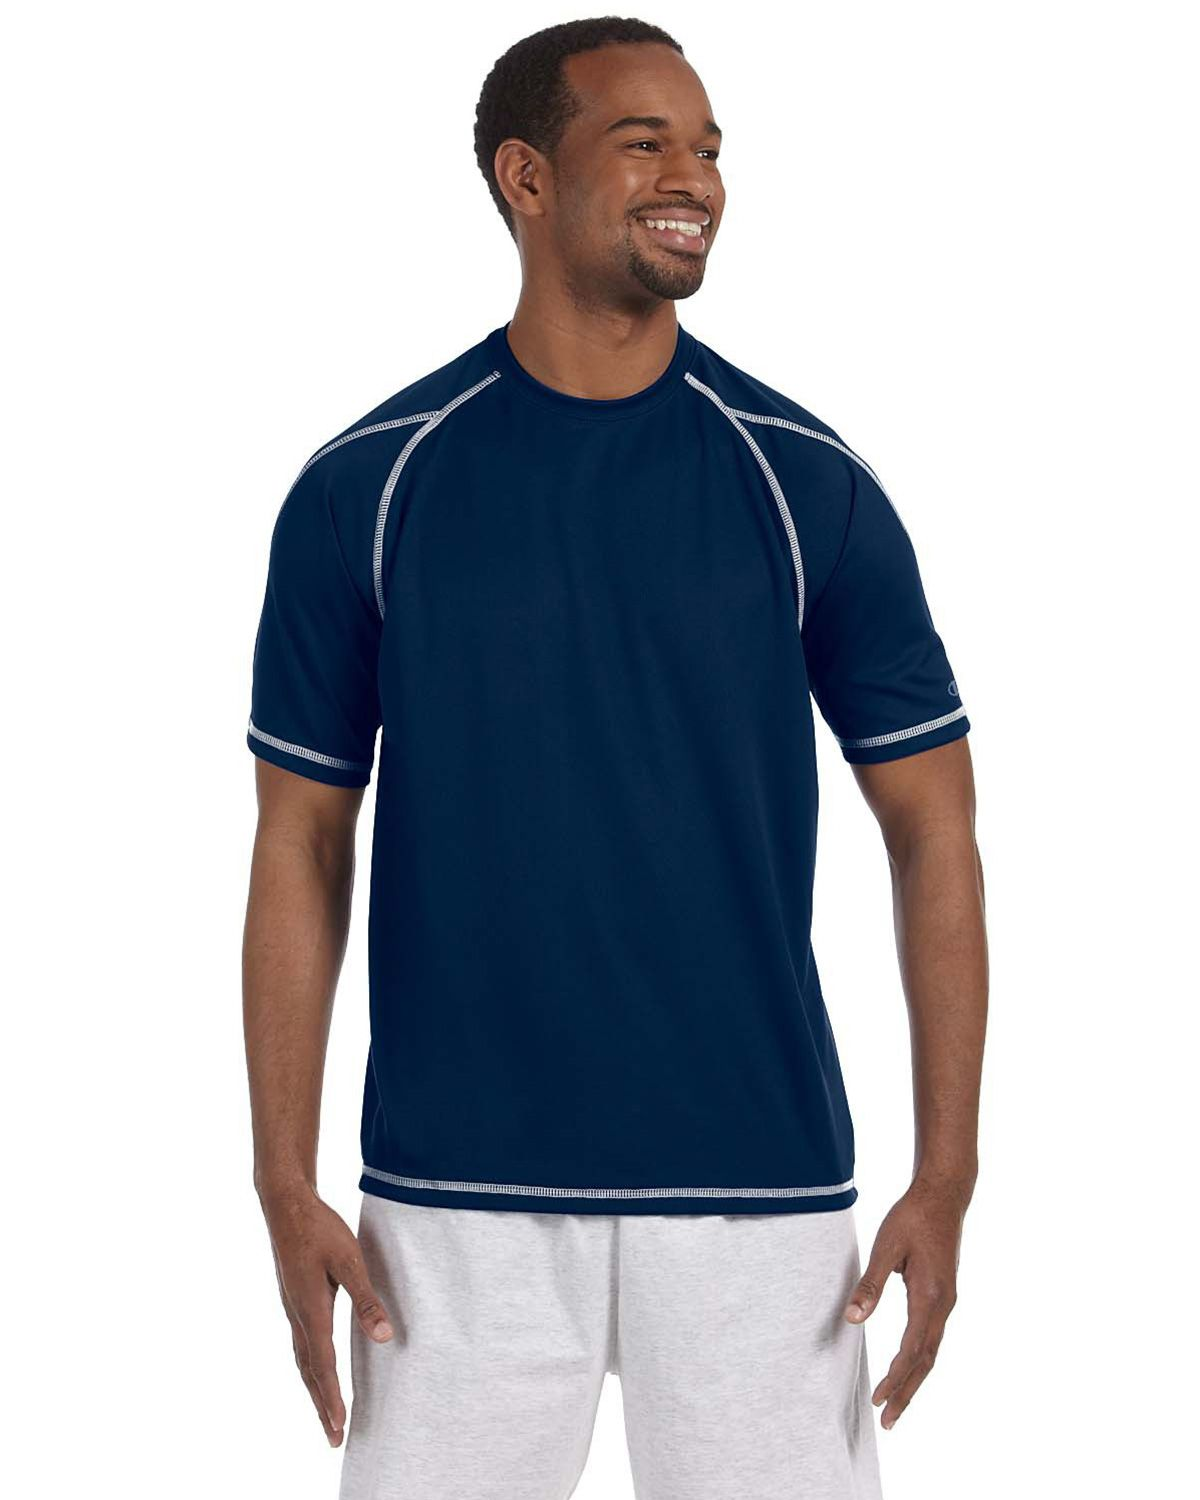 Champion T2057 Double Dry T Shirt - Vibe Navy - XL T2057